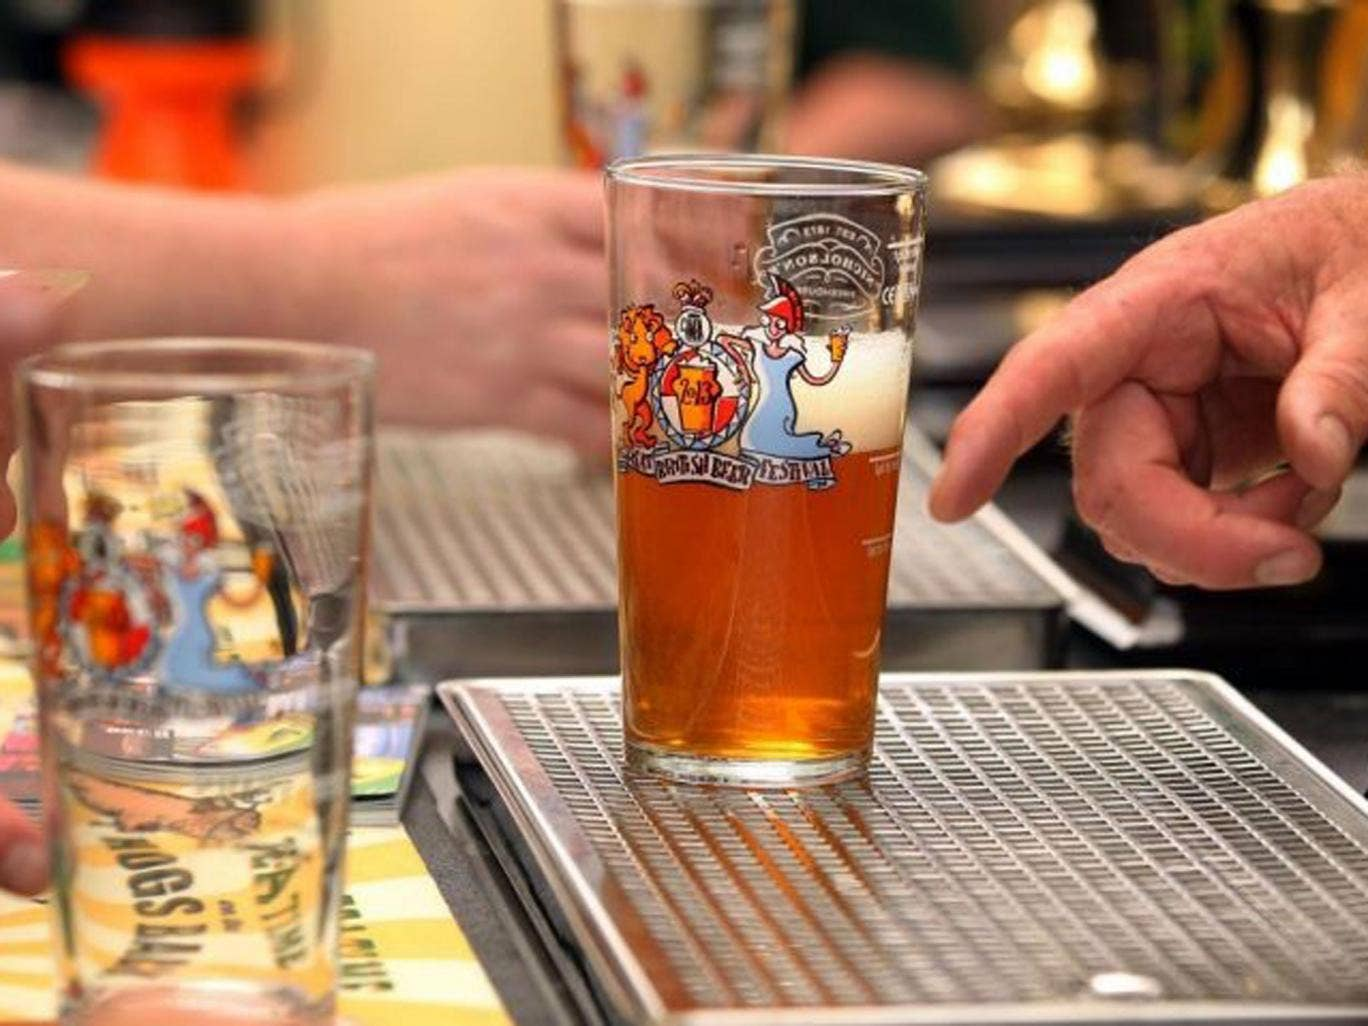 Talks aimed at averting the threat of disruption to deliveries of beers, lagers and soft drinks to pubs, clubs and thousands of other sites will be held today.